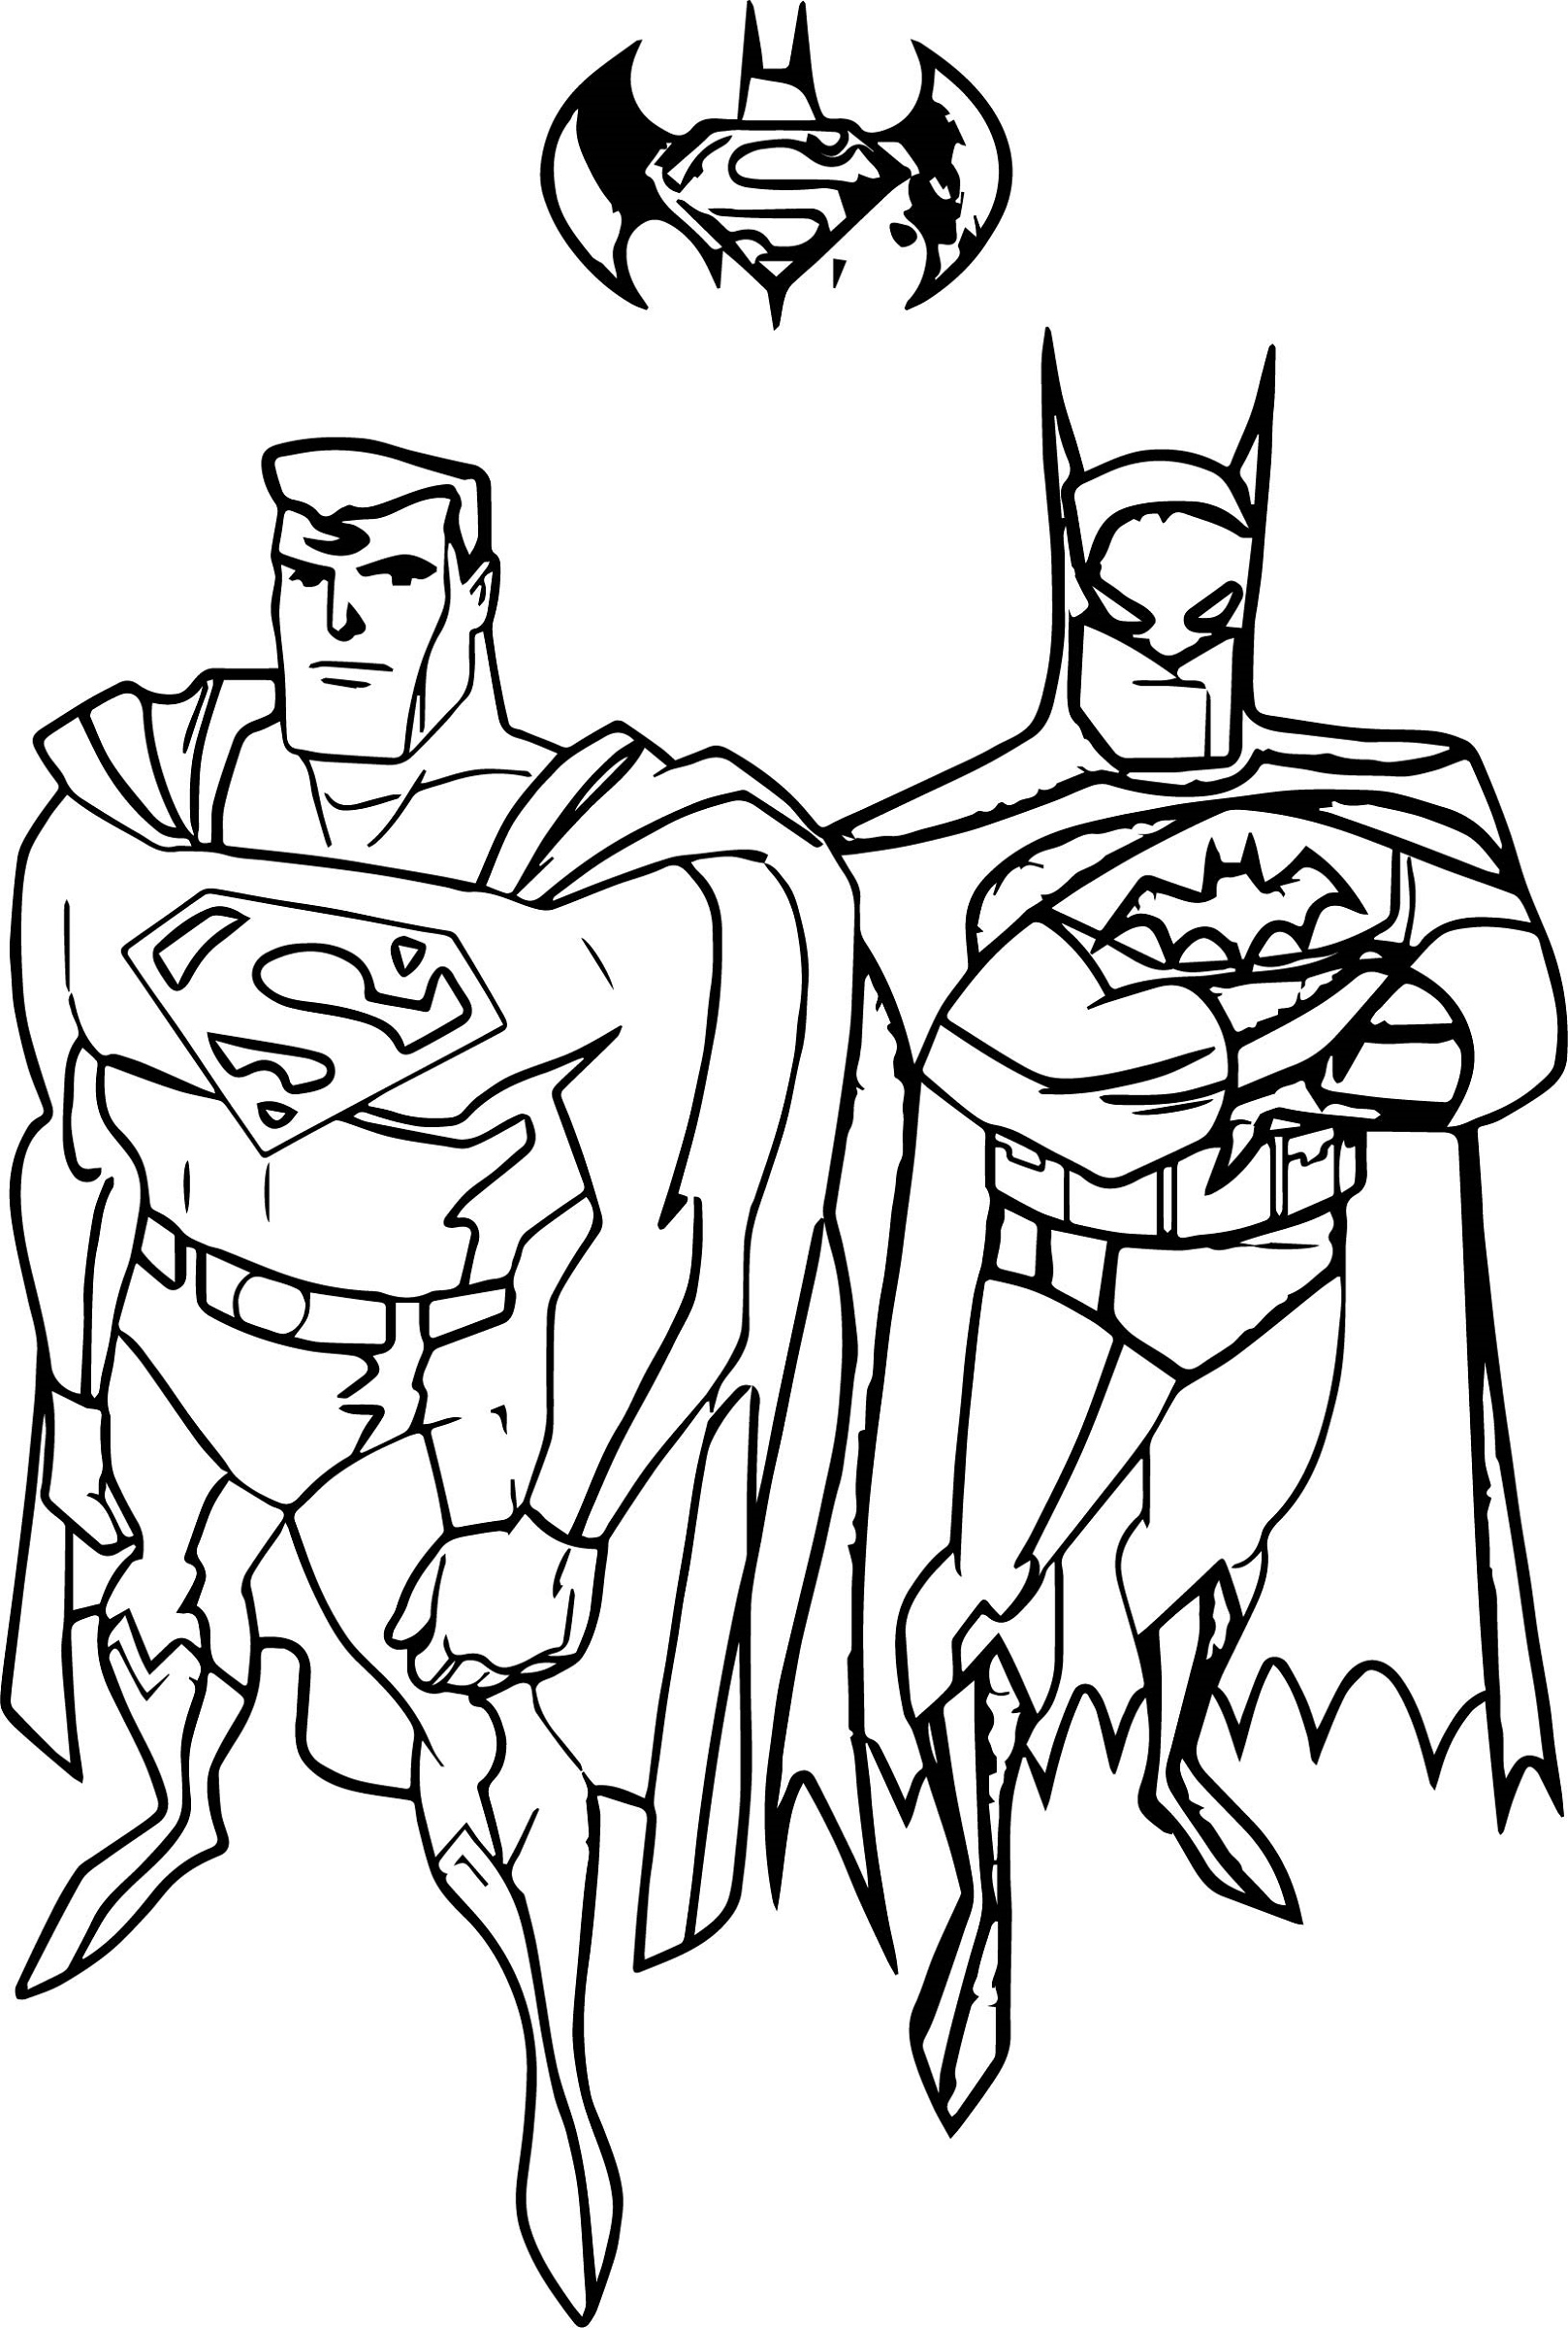 Batman Vs Superman Coloring Pages Free